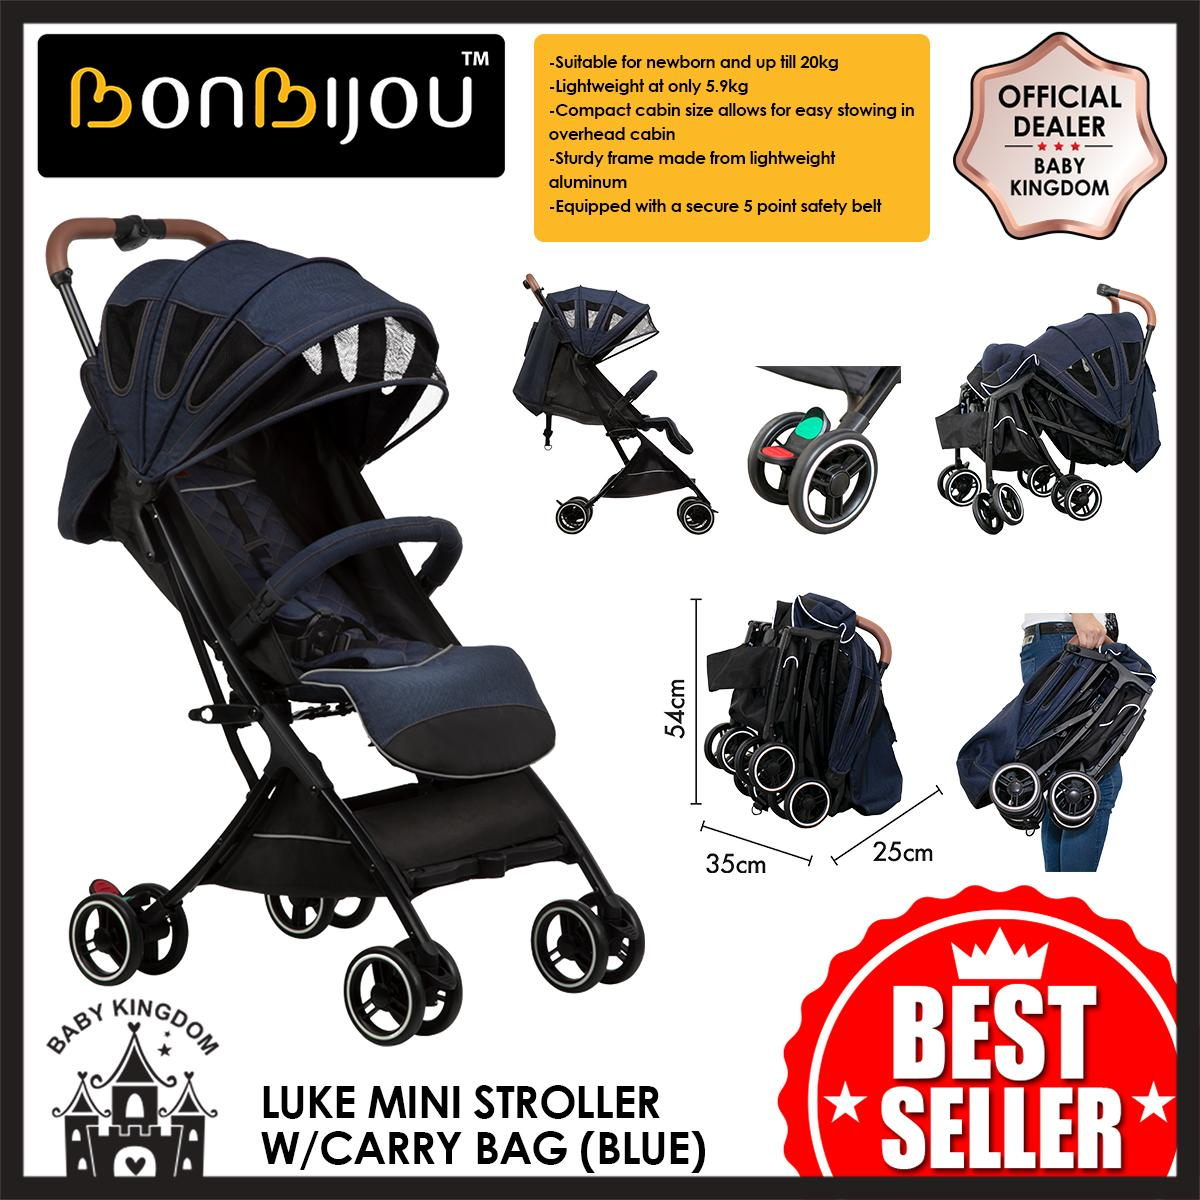 Bonbijou Luke Mini Stroller w/Carry Bag